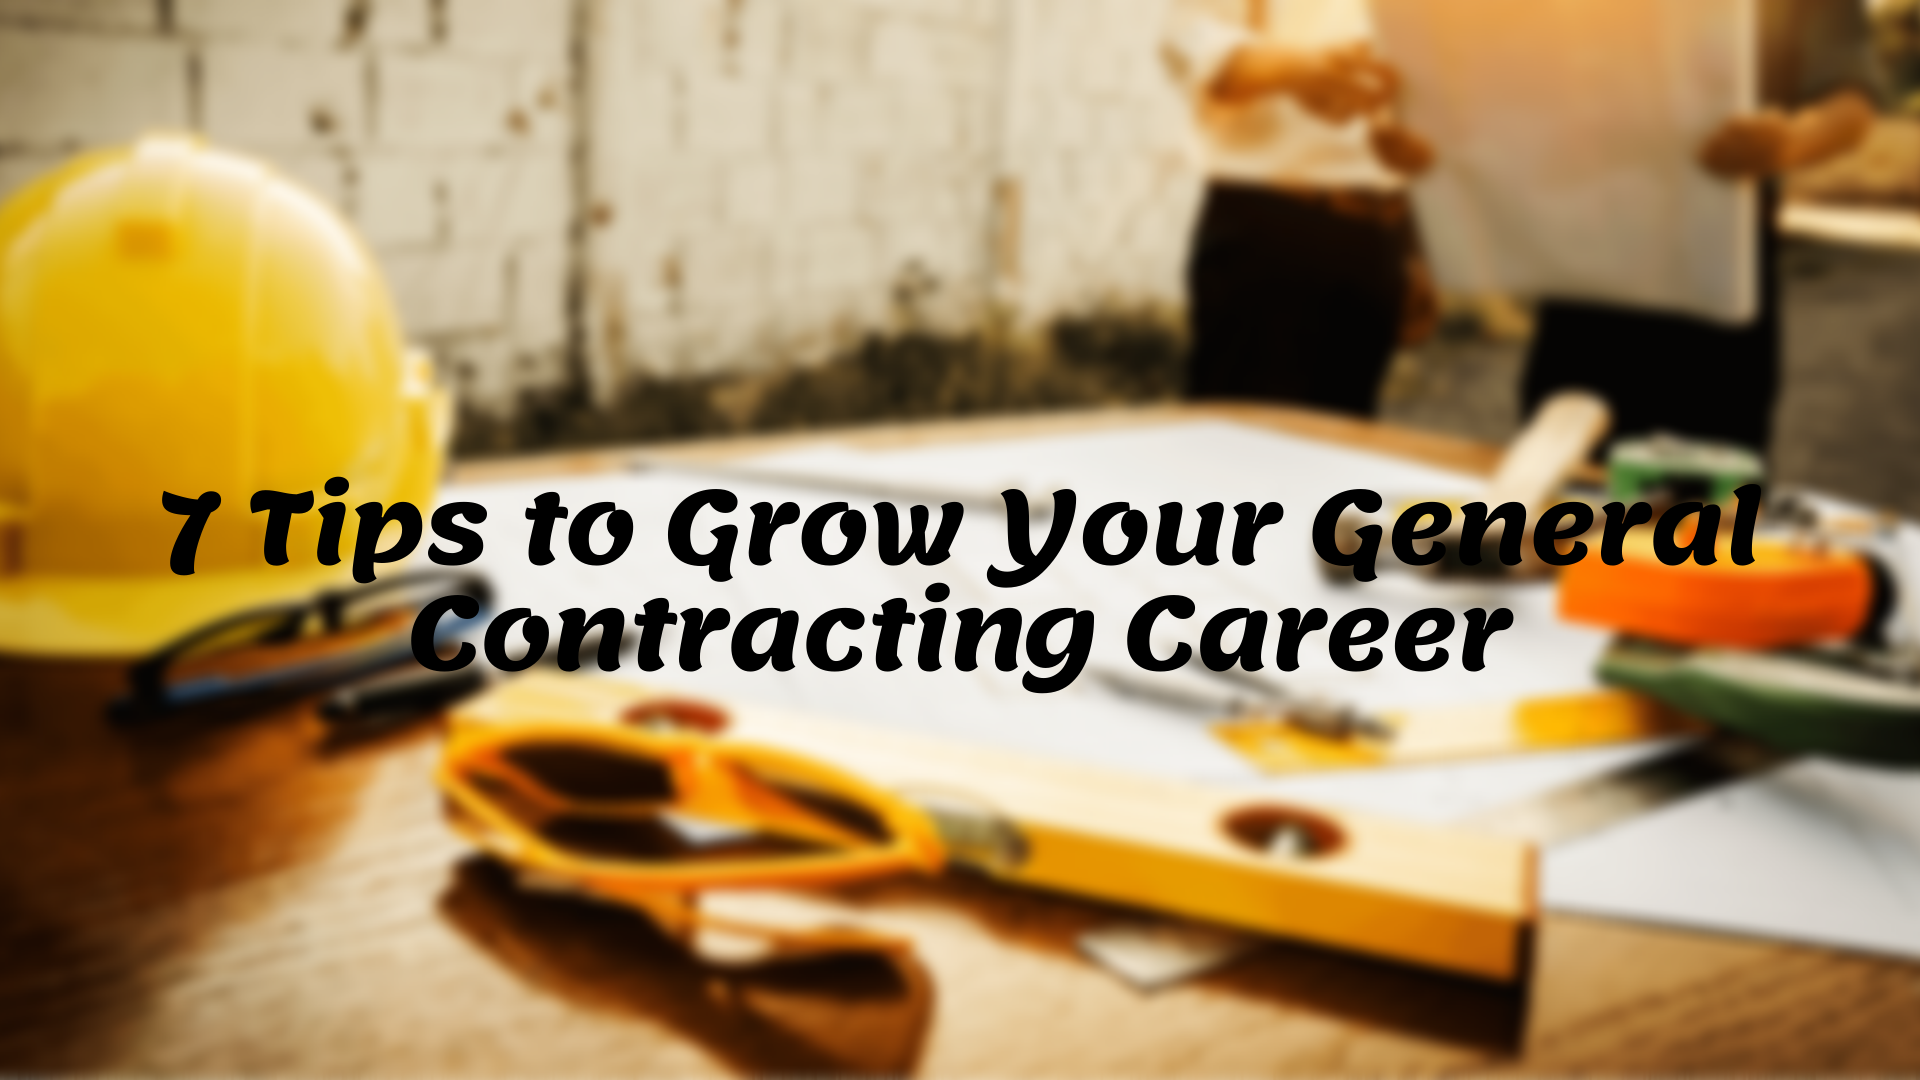 7 Tips to Grow Your General Contracting Career